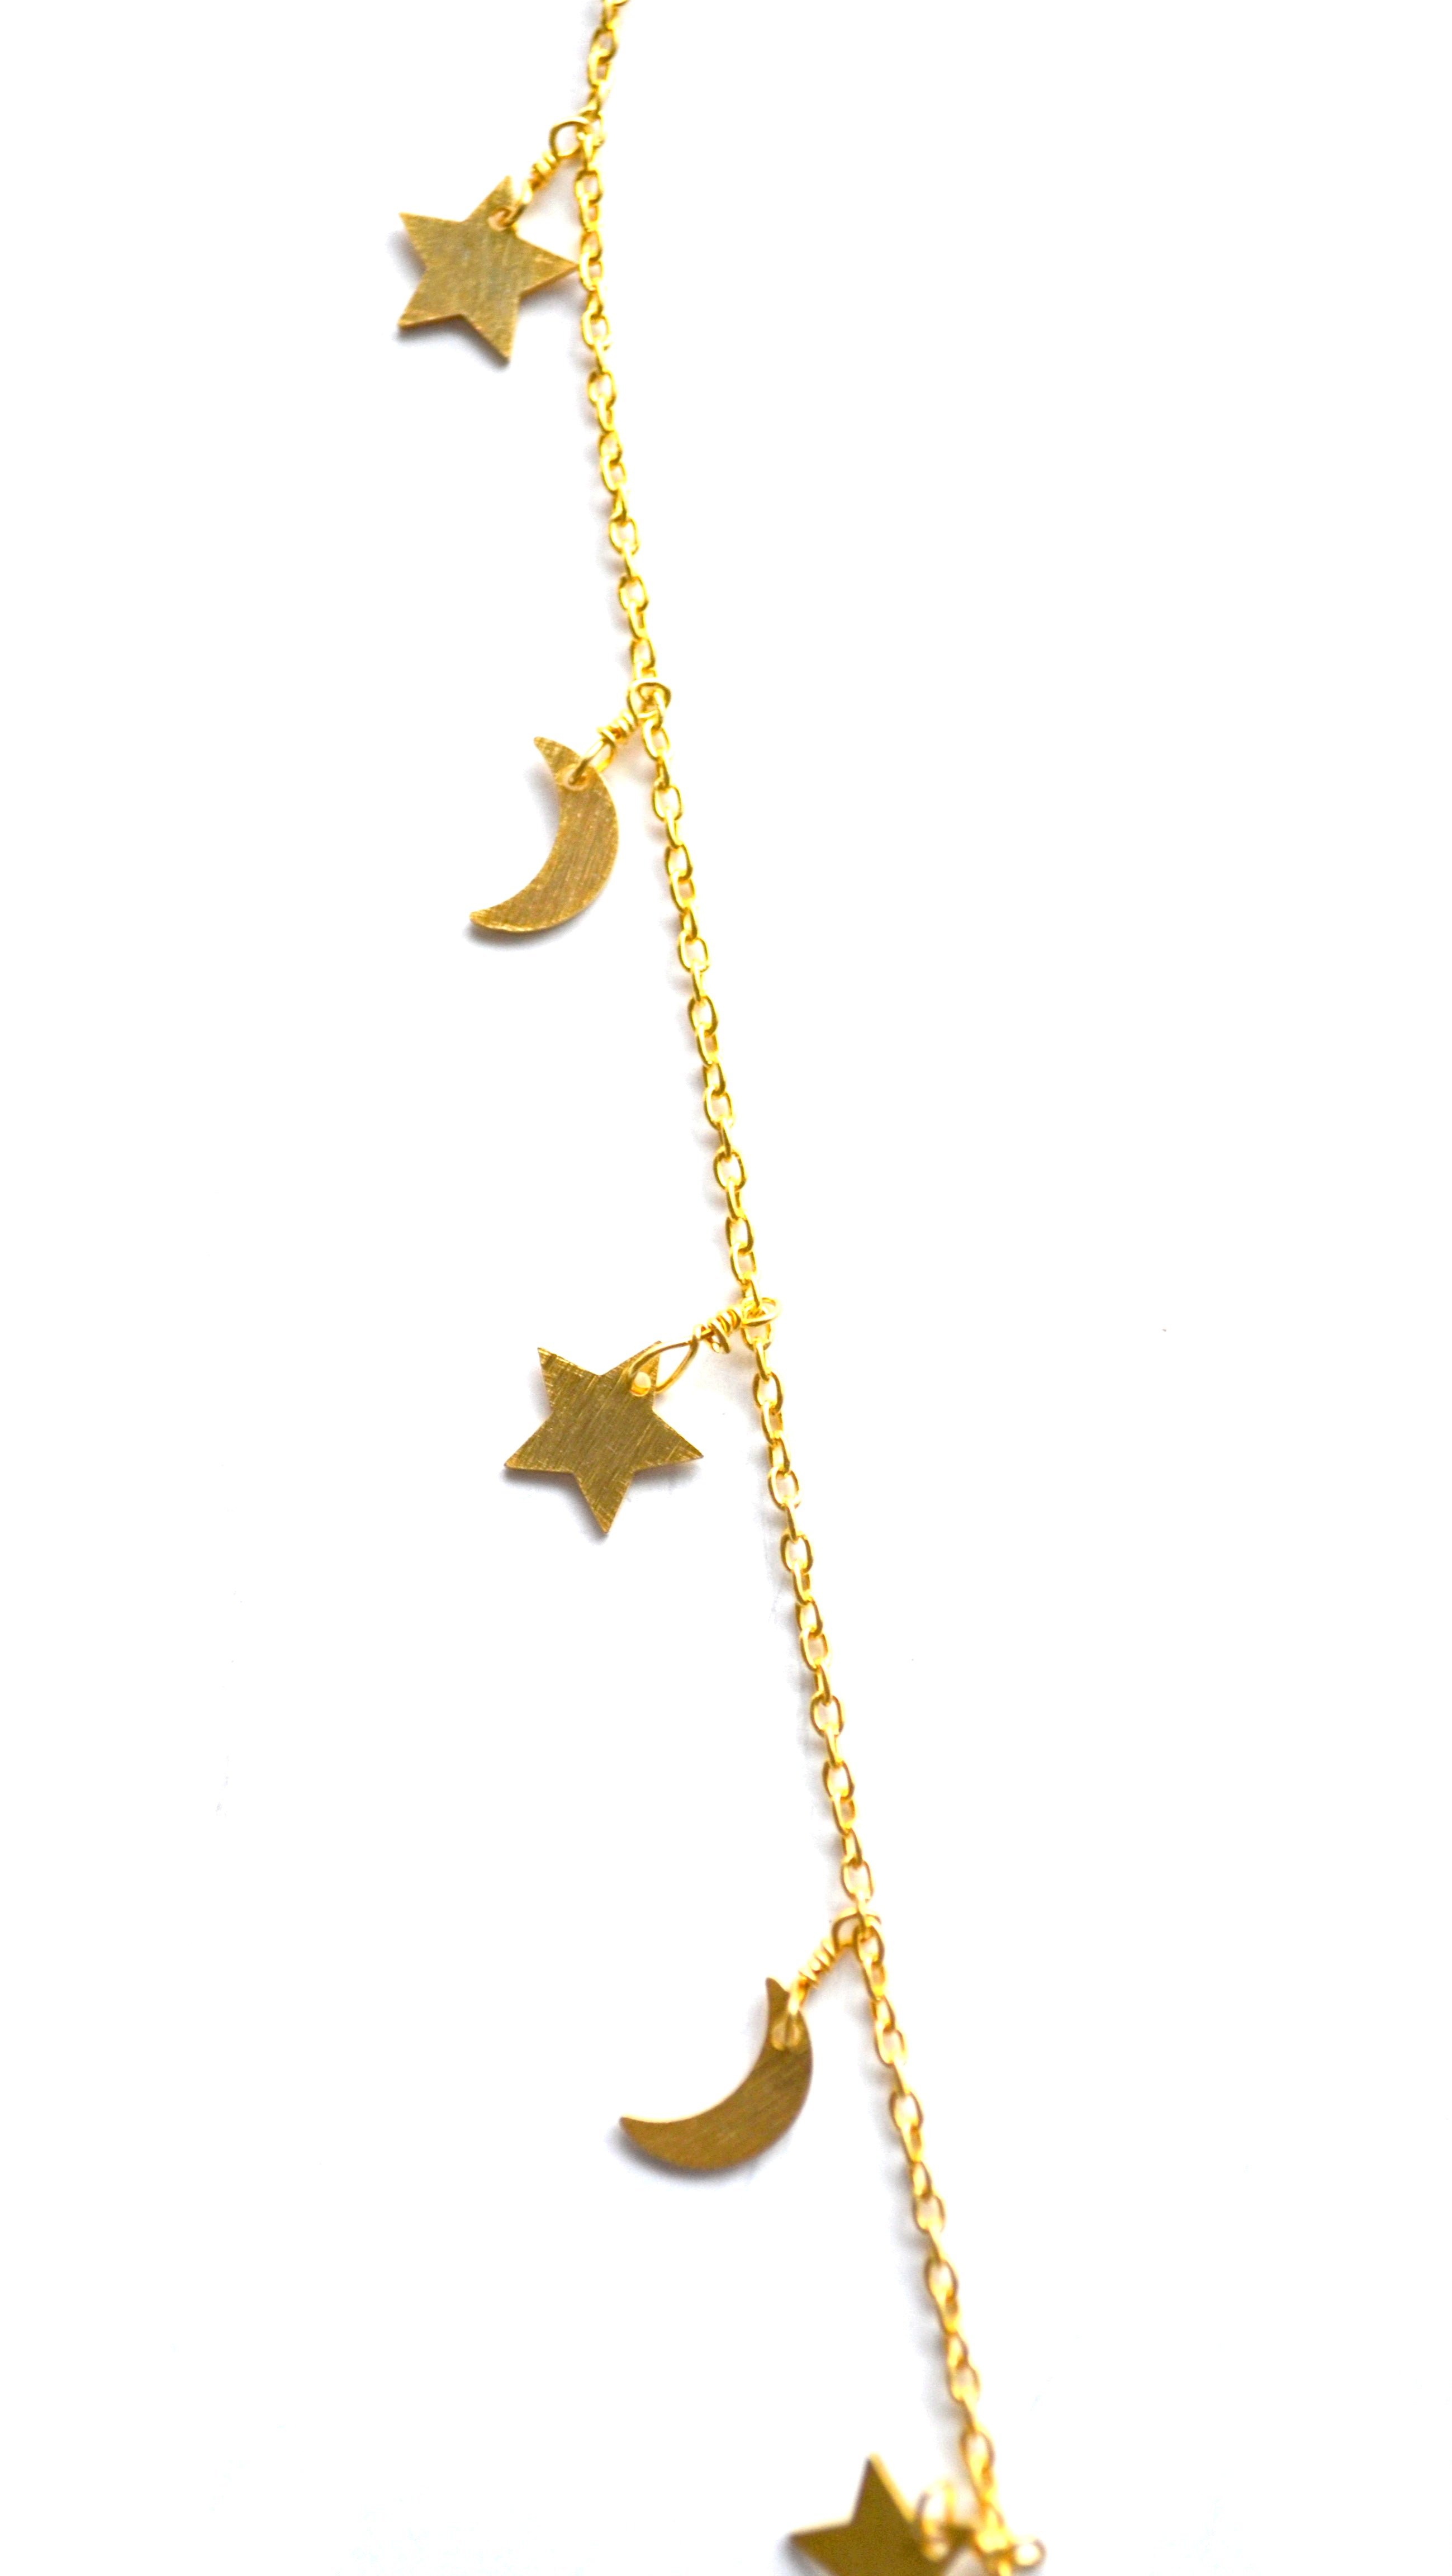 Gold Celestial Star & Moon Necklace with a Moon Charm